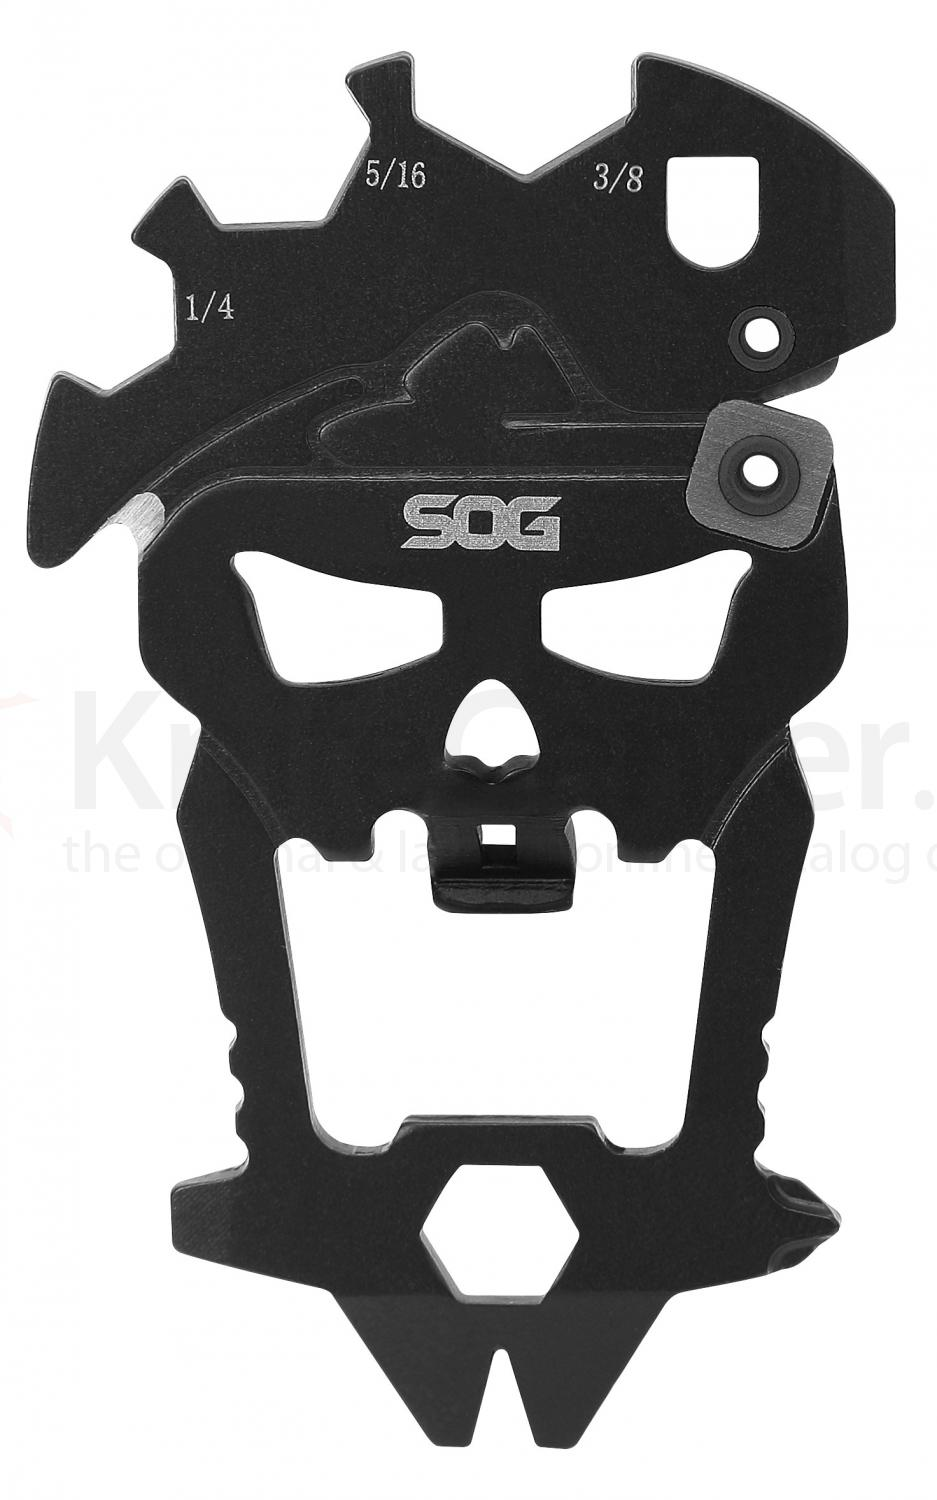 SOG SM1001 MacV Tool, 12 Component Skull Multi-Tool, 2.5 inch Overall